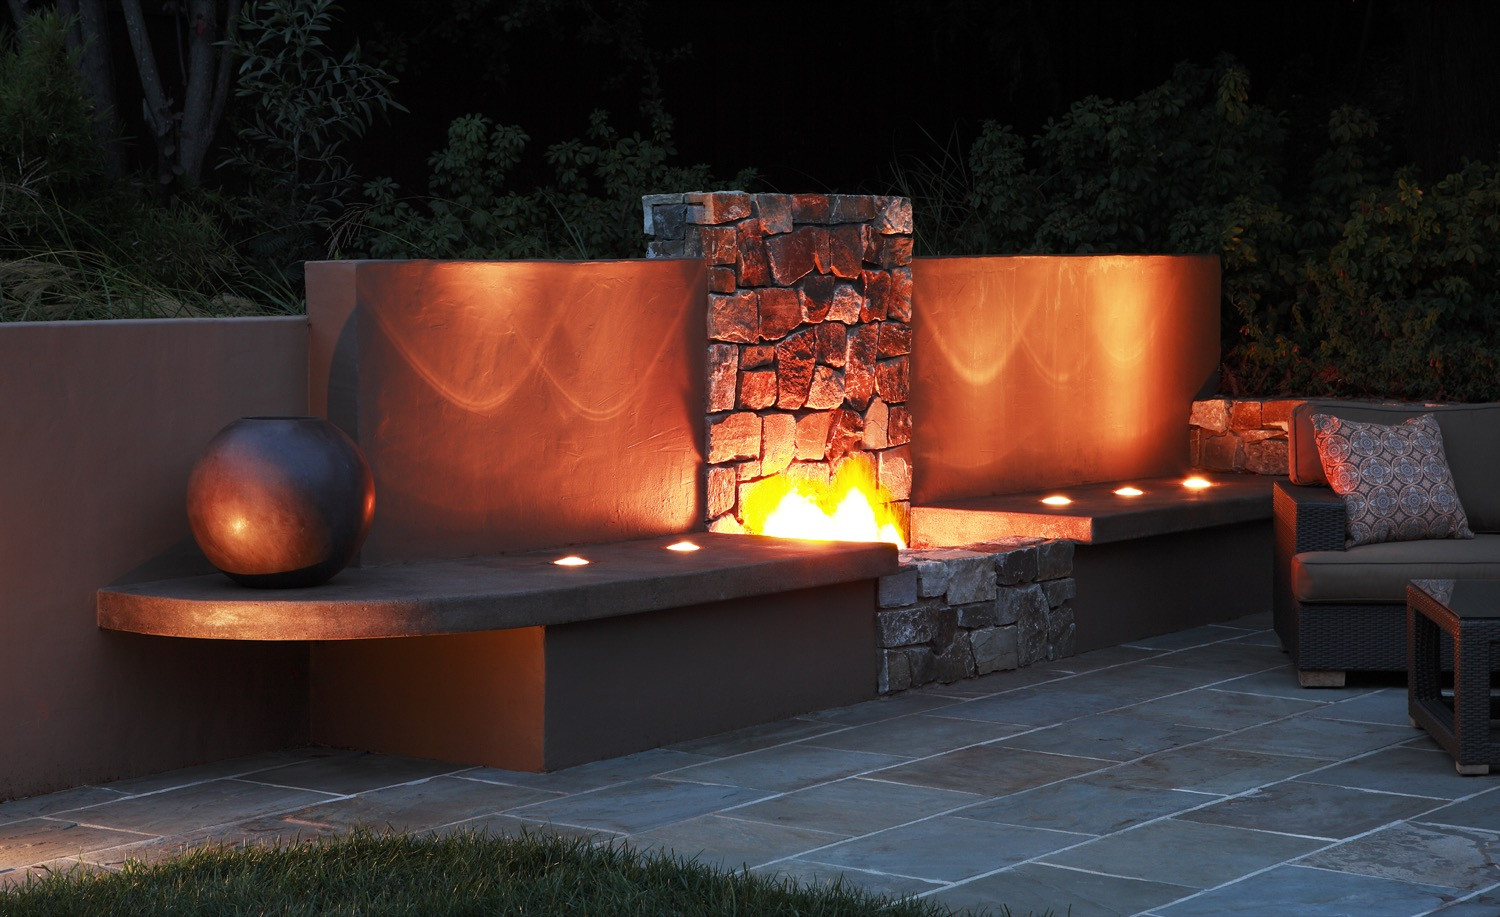 The firepit is bright and warm in the evenings in the outdoor living room.